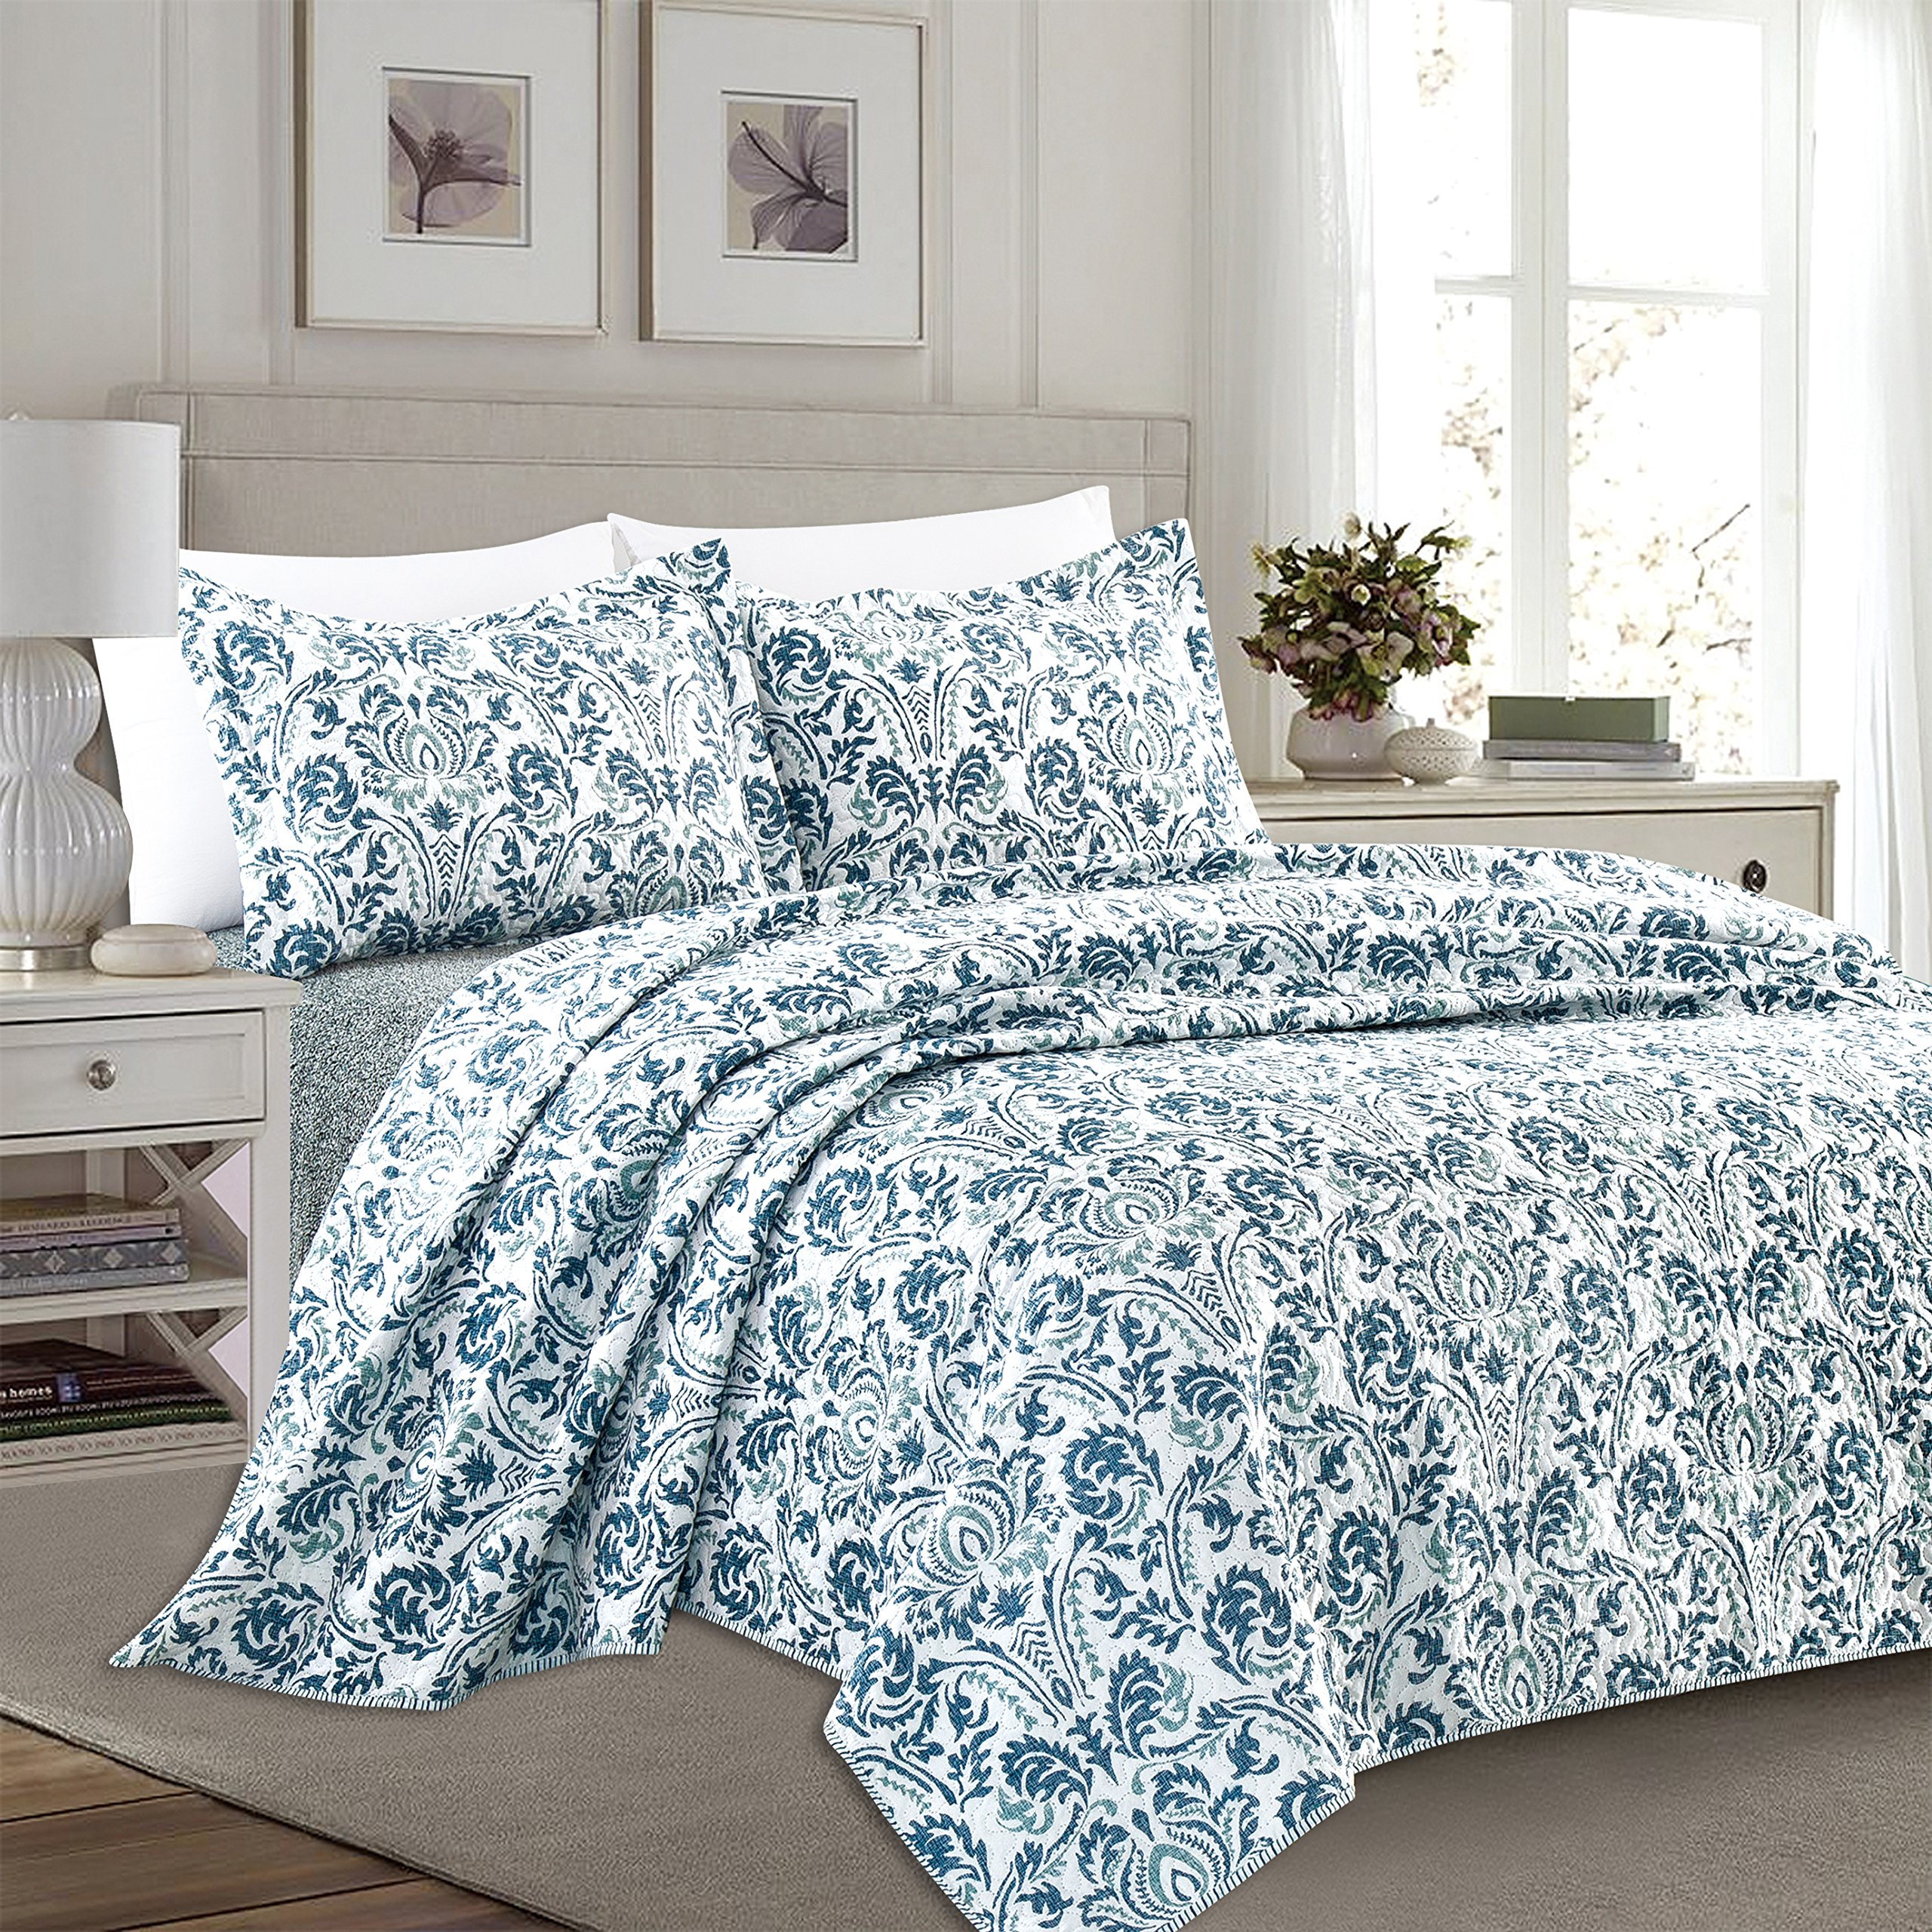 Home Fashion Designs 3-Piece Reversible Quilt Set with Shams. All-Season Bedspread with Floral Printed Pattern in Bright Colors. Claribel Collection By Brand. (Full/Queen, Multi)